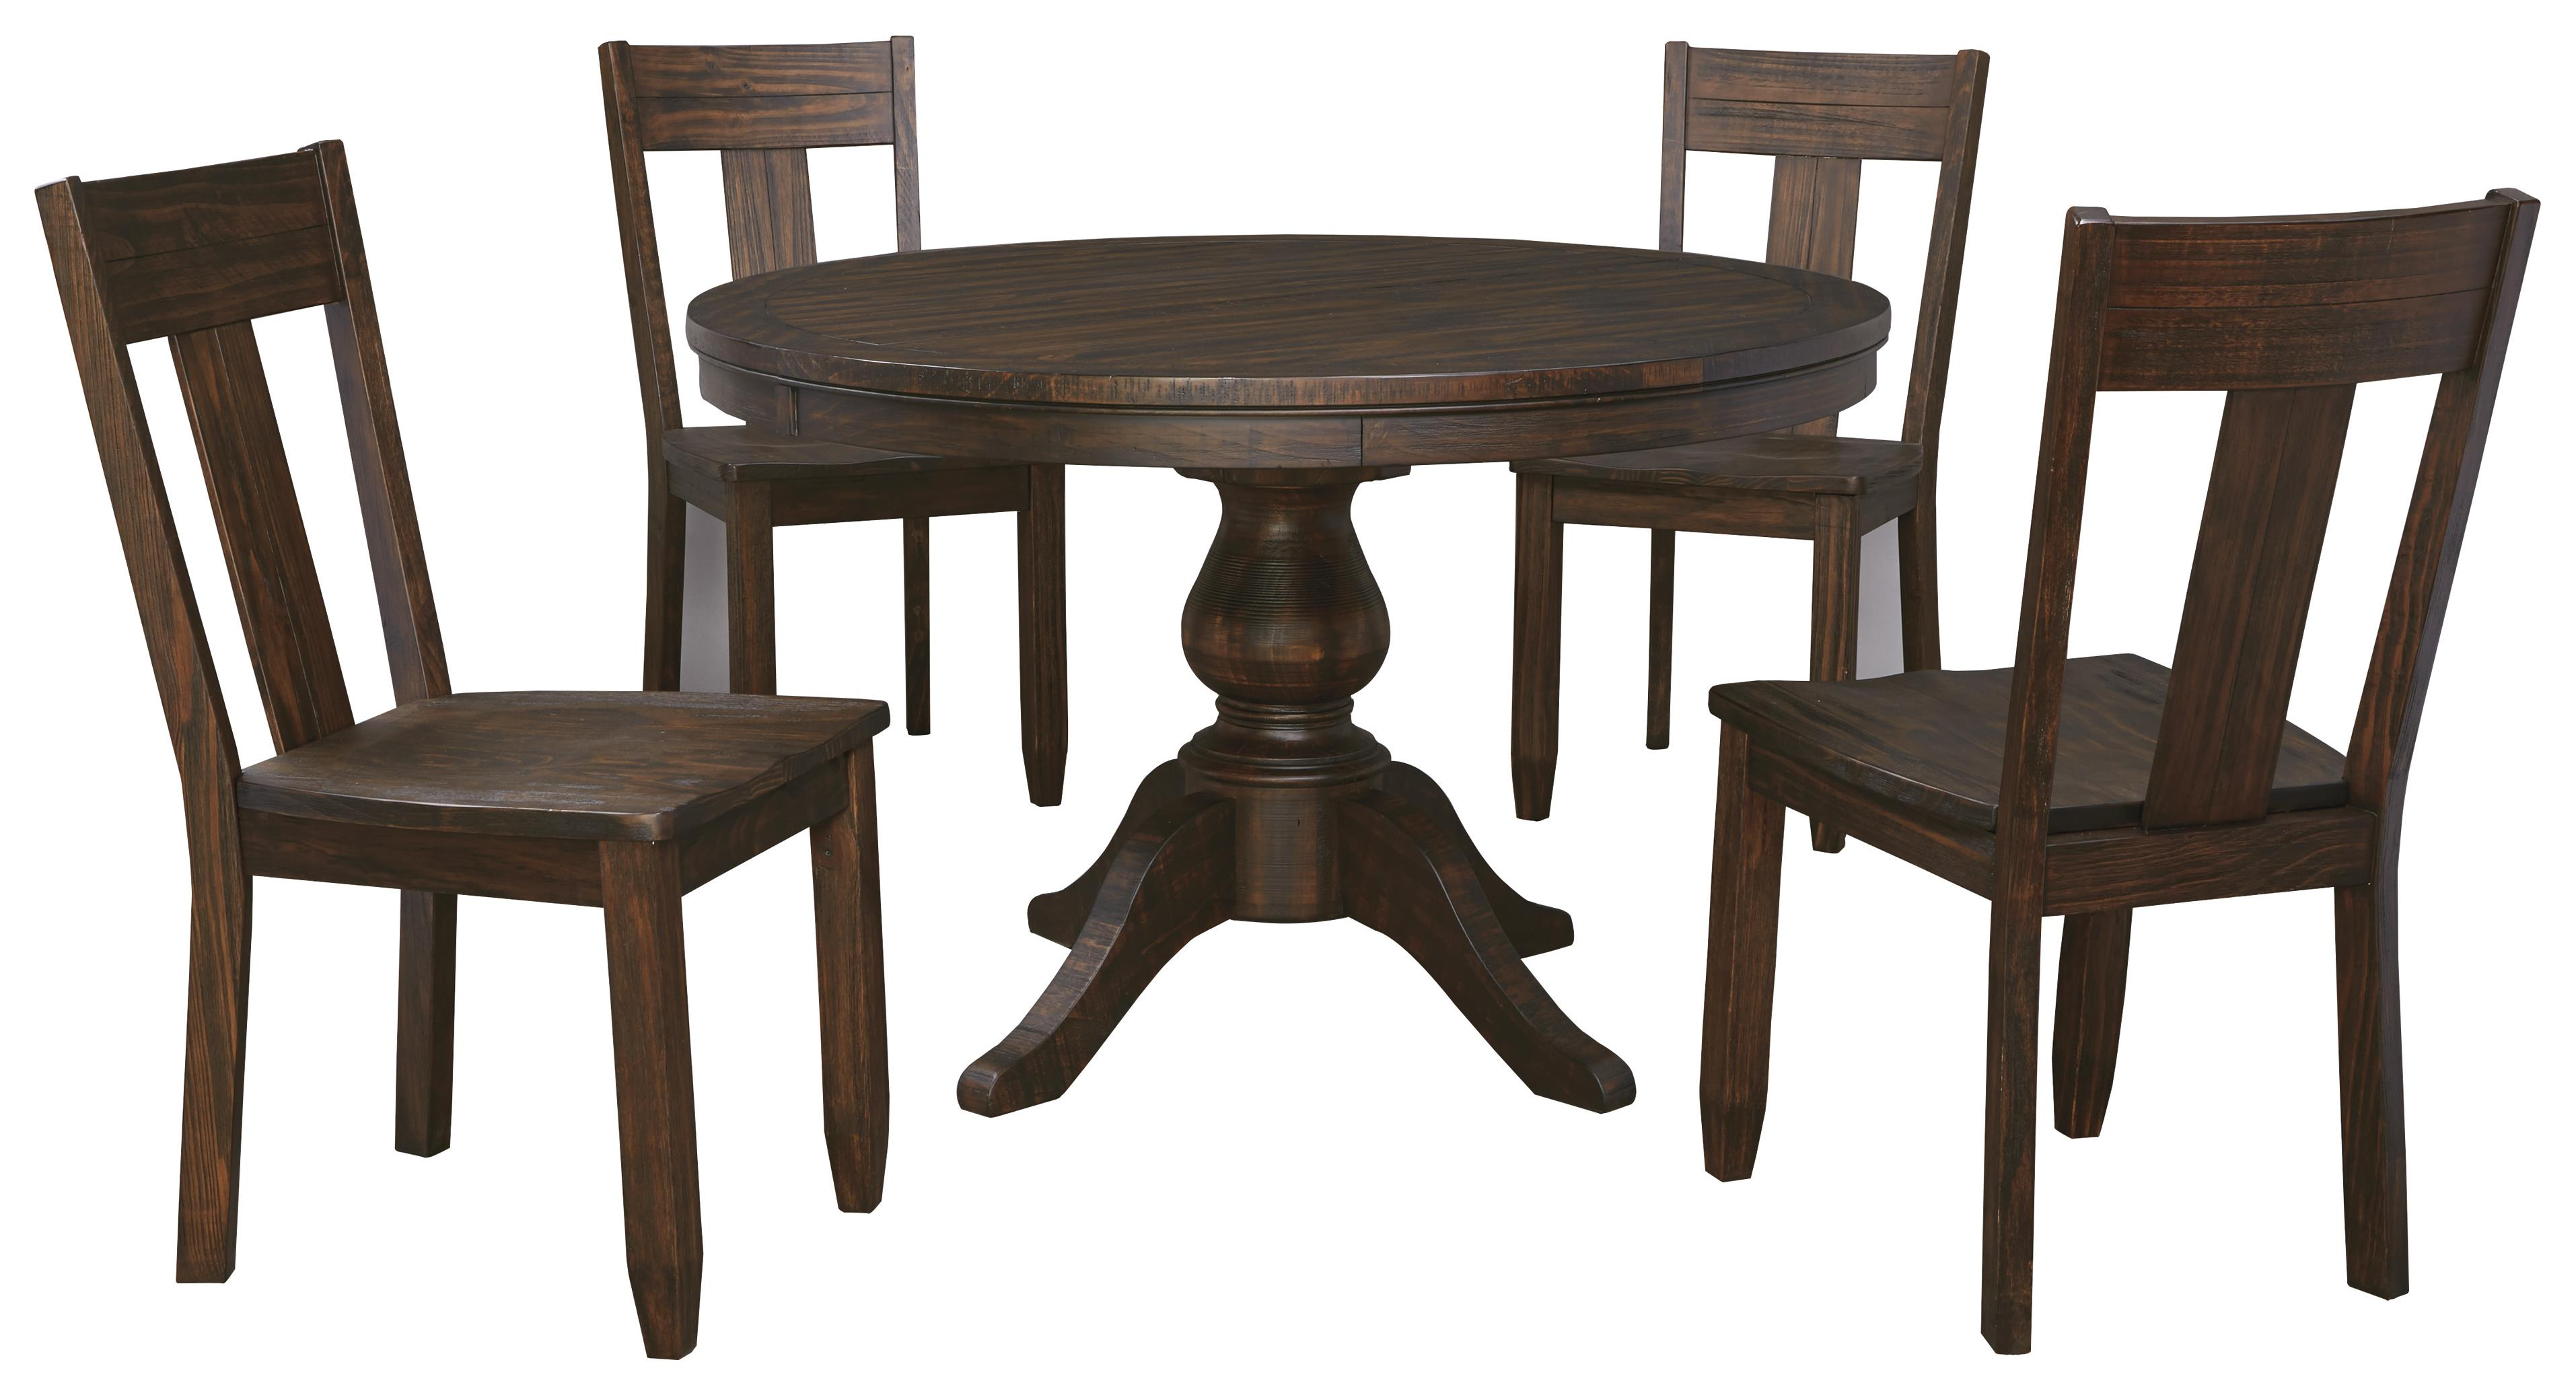 Ashley signature design trudell 5 piece round dining table set with wood seat side chairs dunk Round dining table set